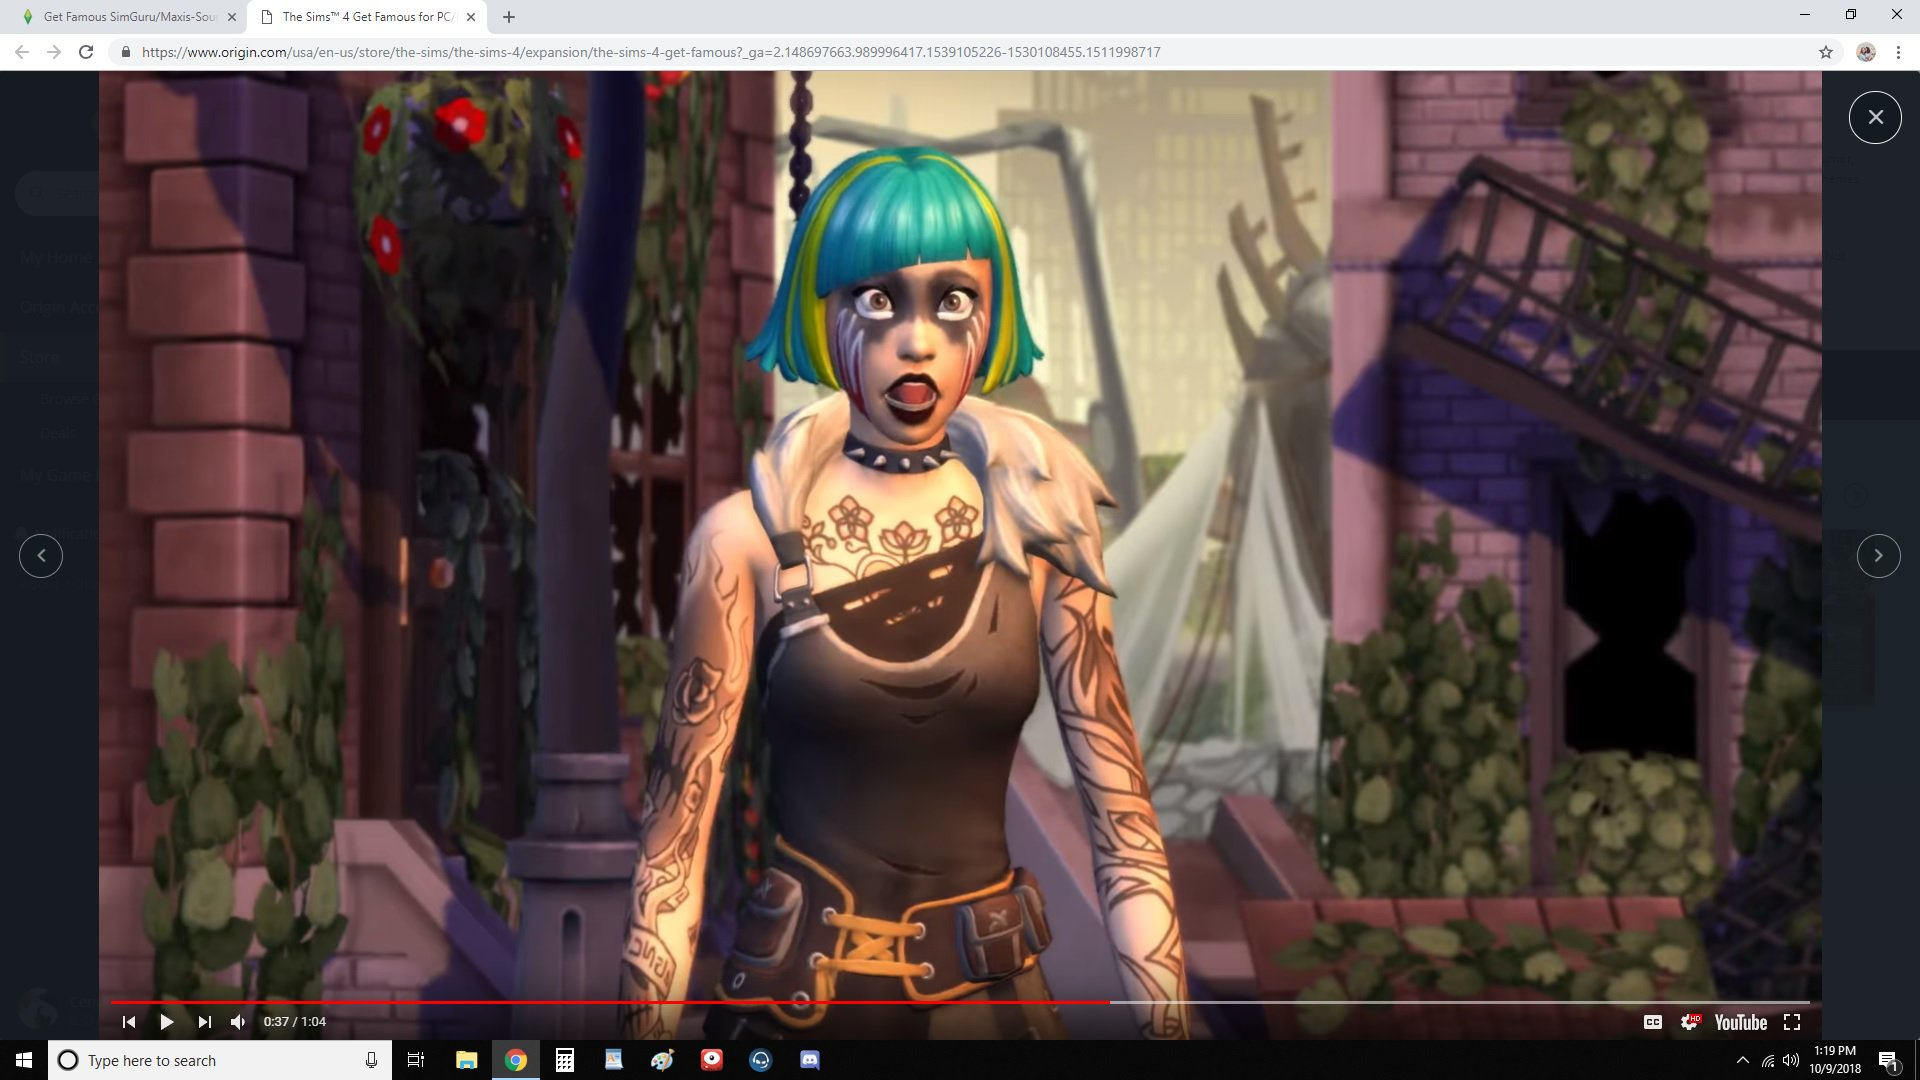 Get Famous SimGuru/Maxis-Sourced Info — The Sims Forums